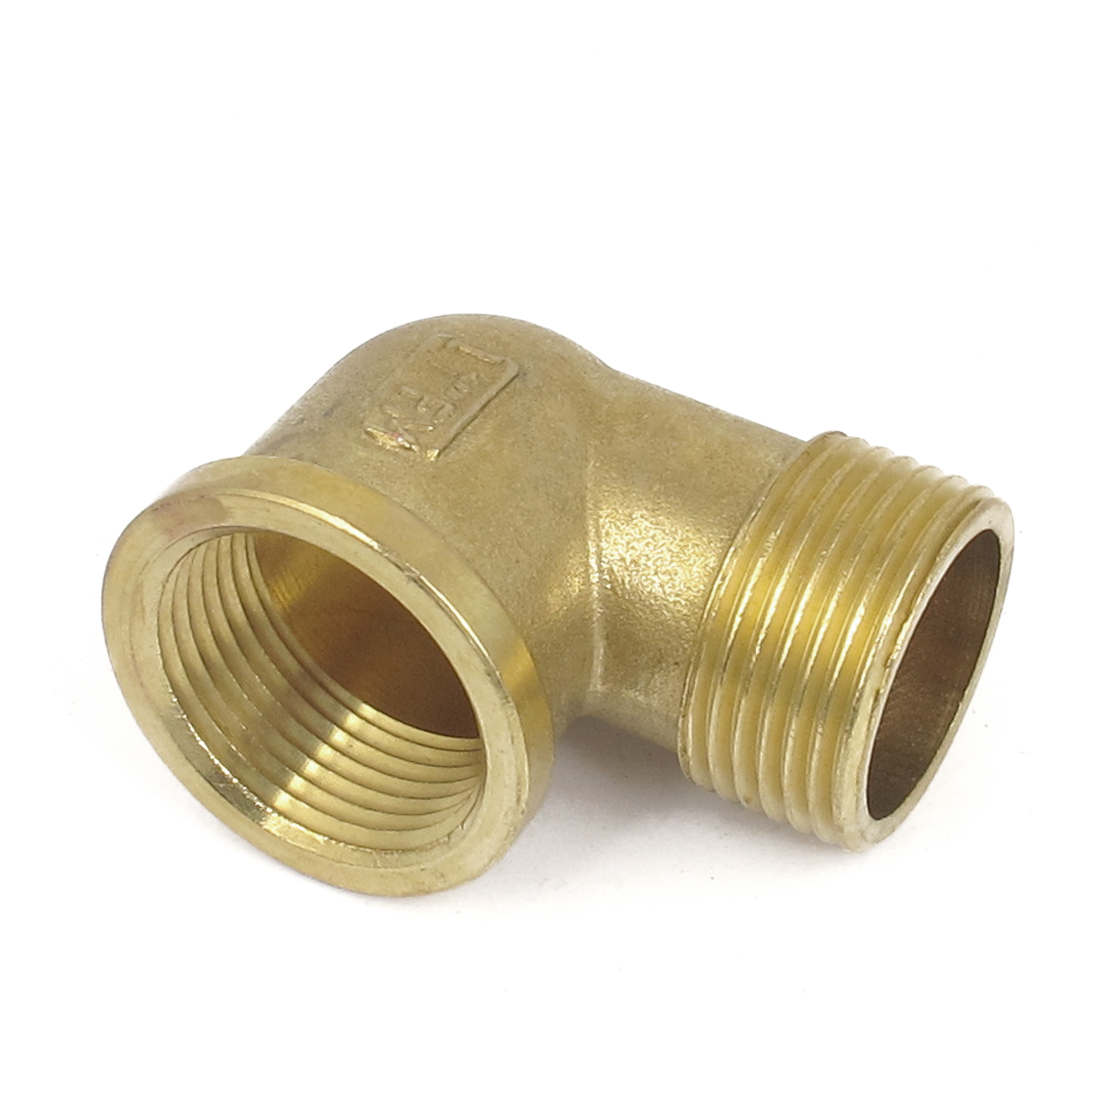 Brass 90 Degree 1BSP Male to Female Elbow Connector Coupler Fitting Adapter